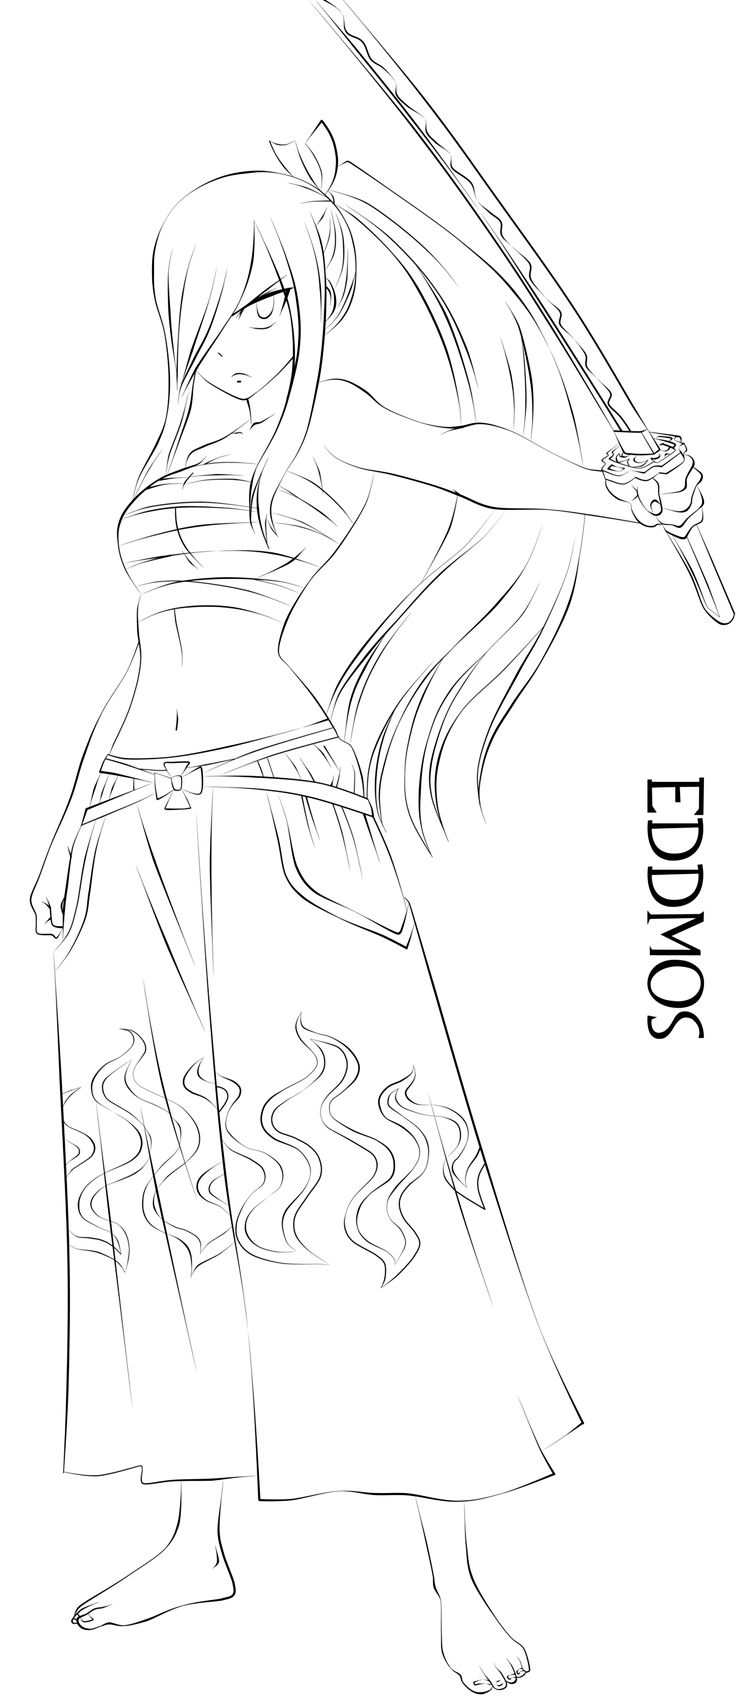 Here's my sword- Erza Scarlet Lineart by eddmos on DeviantArt